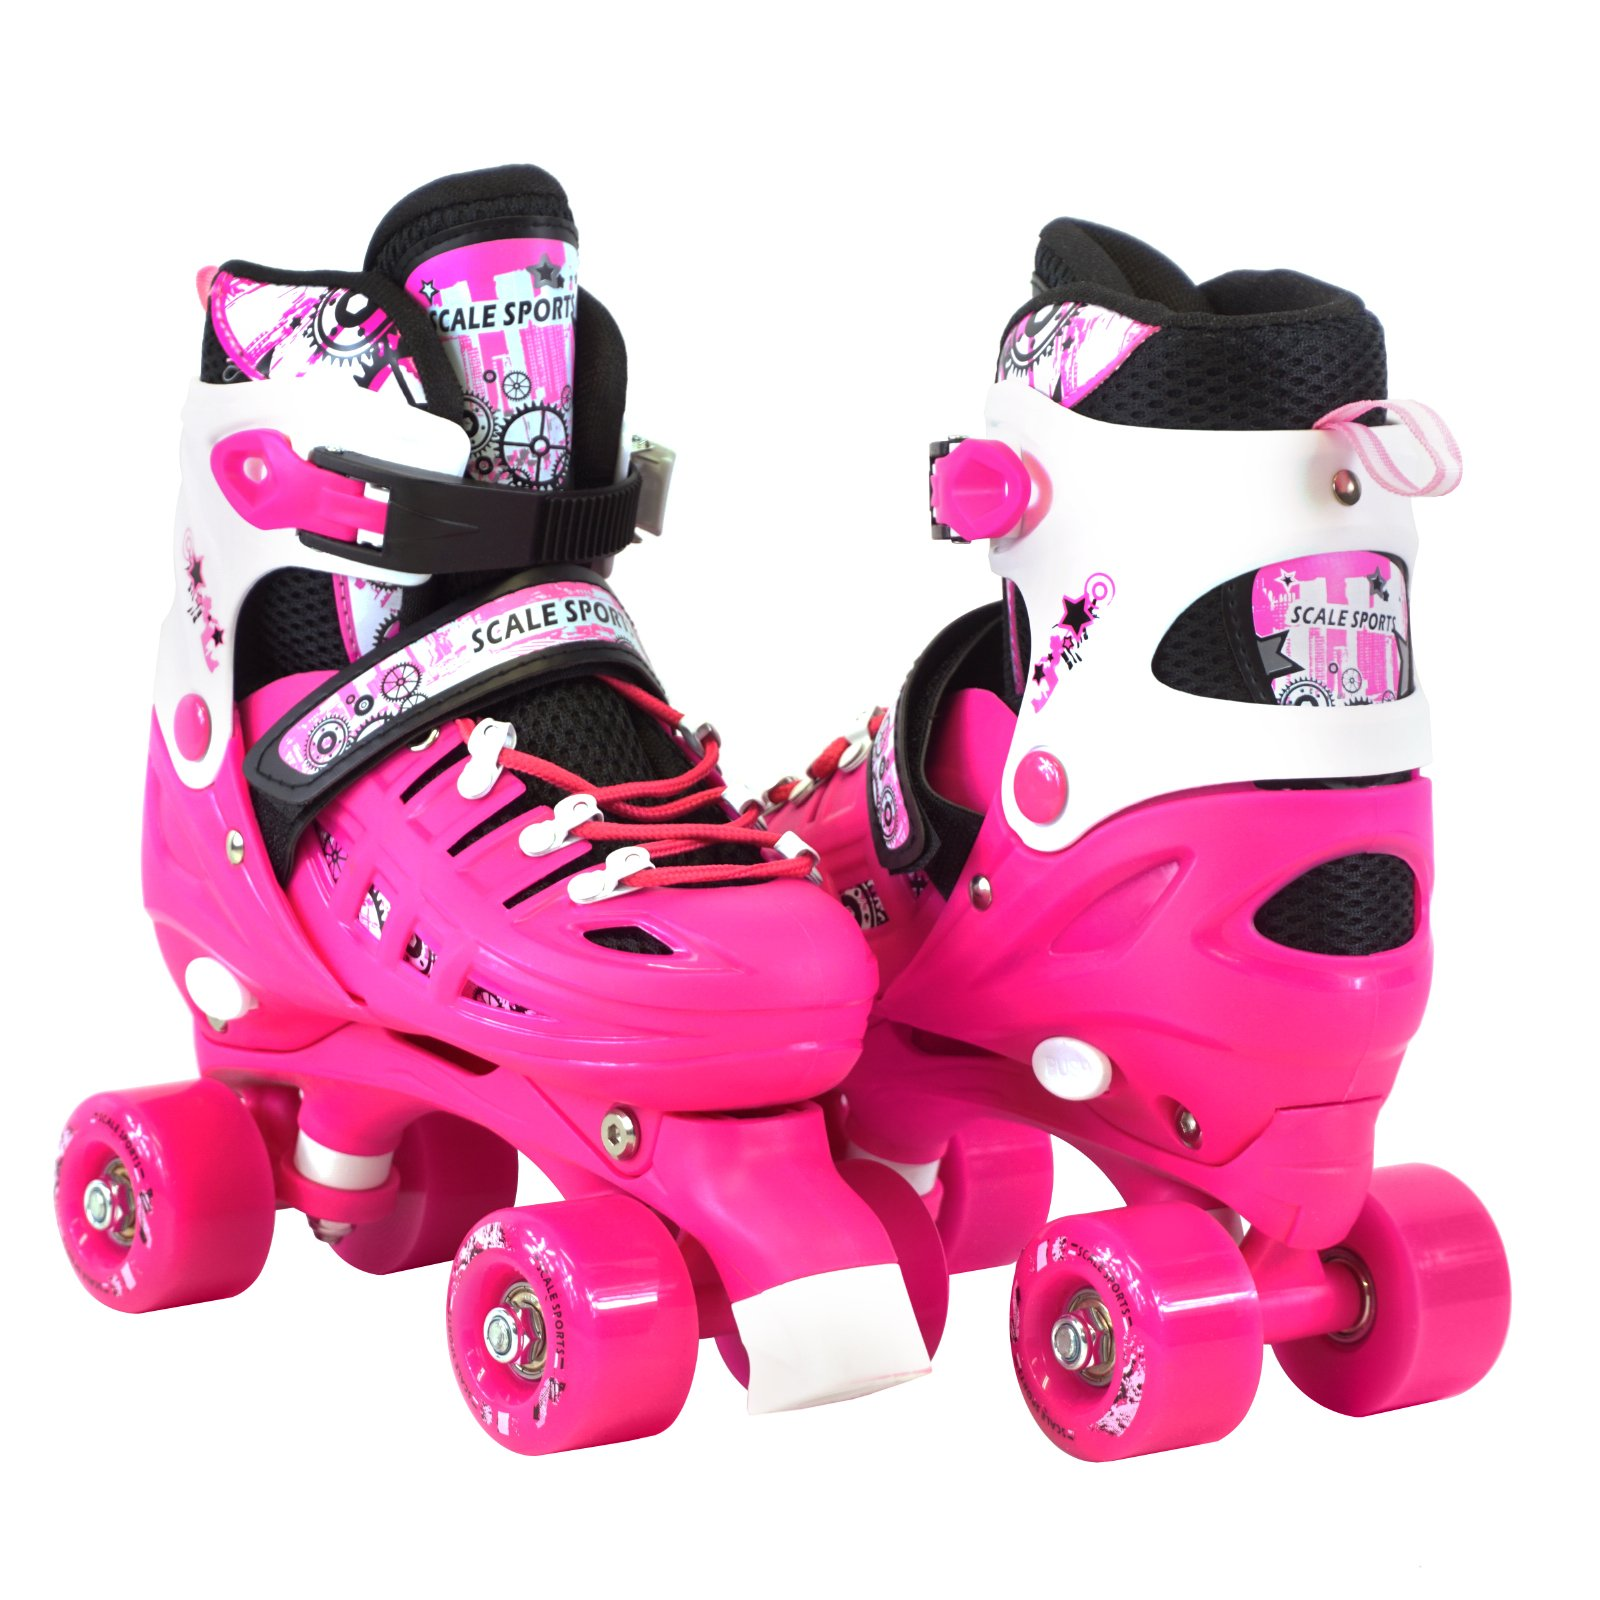 Scale Sports Adjustable Pink Quad Roller Skates For Kids Small Sizes